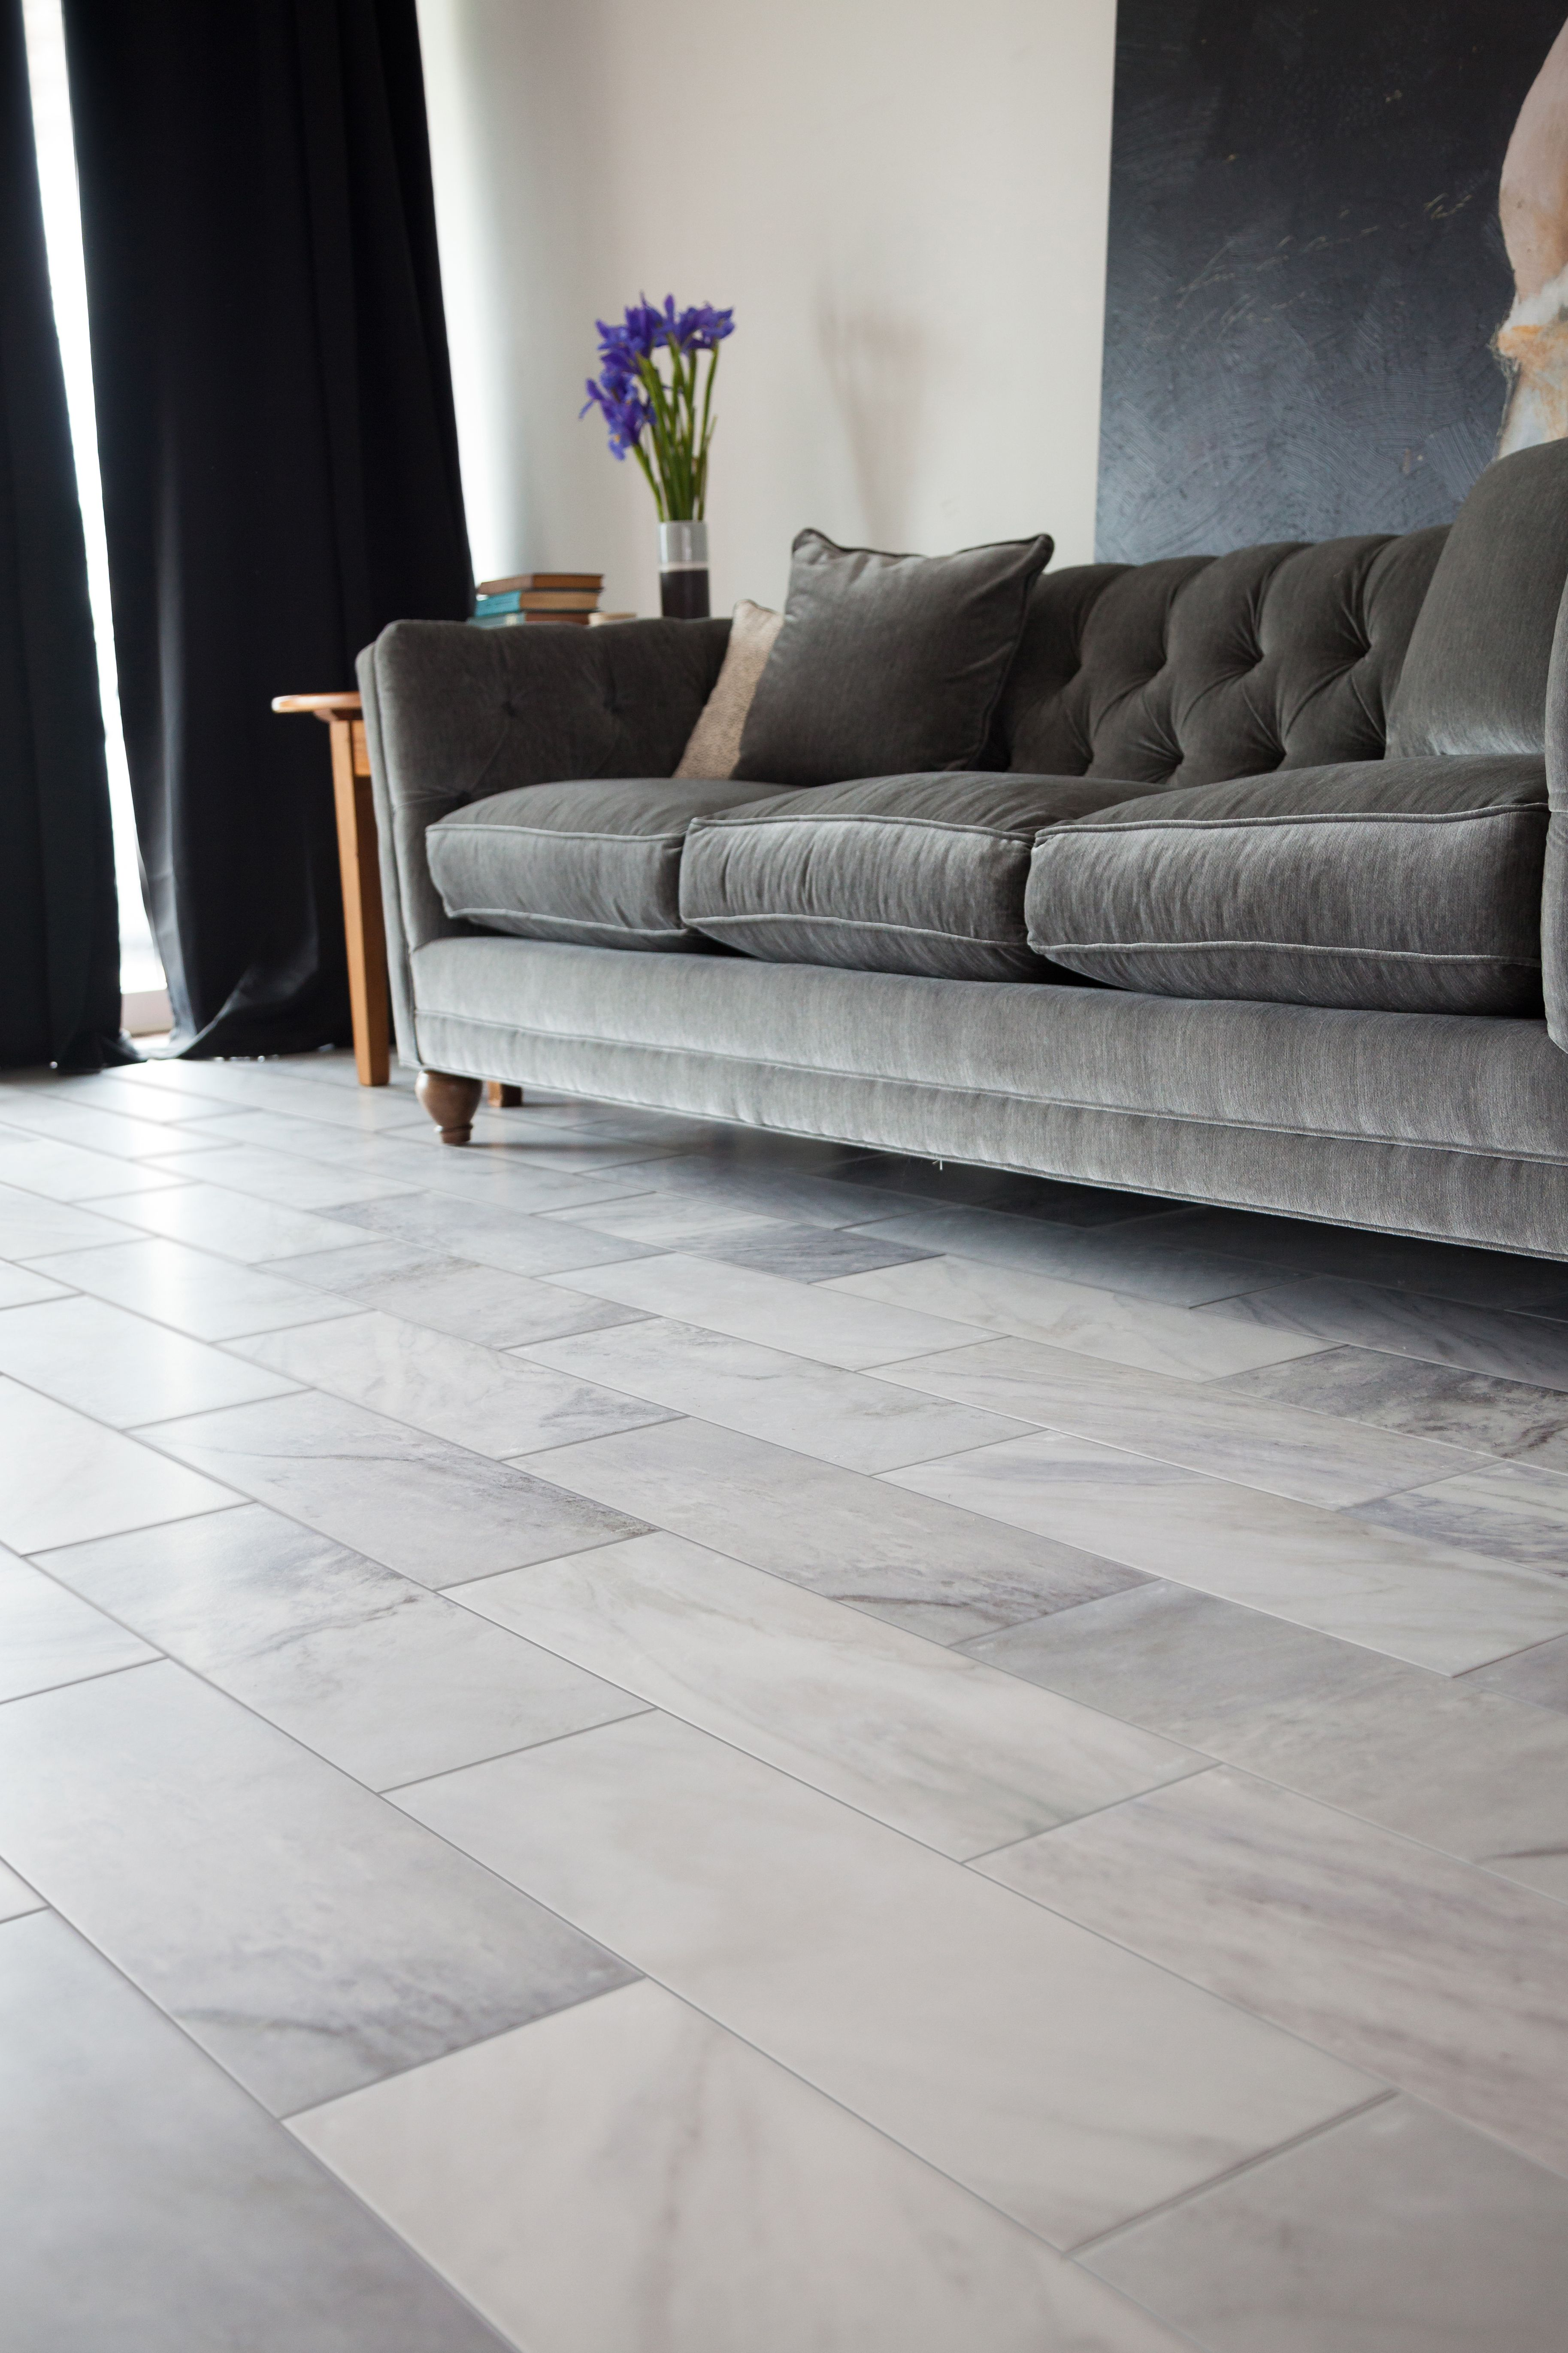 Storka Flooring Manor House Tile Classic Natural Stone Beauty Combined With The Durability Of Porcelain